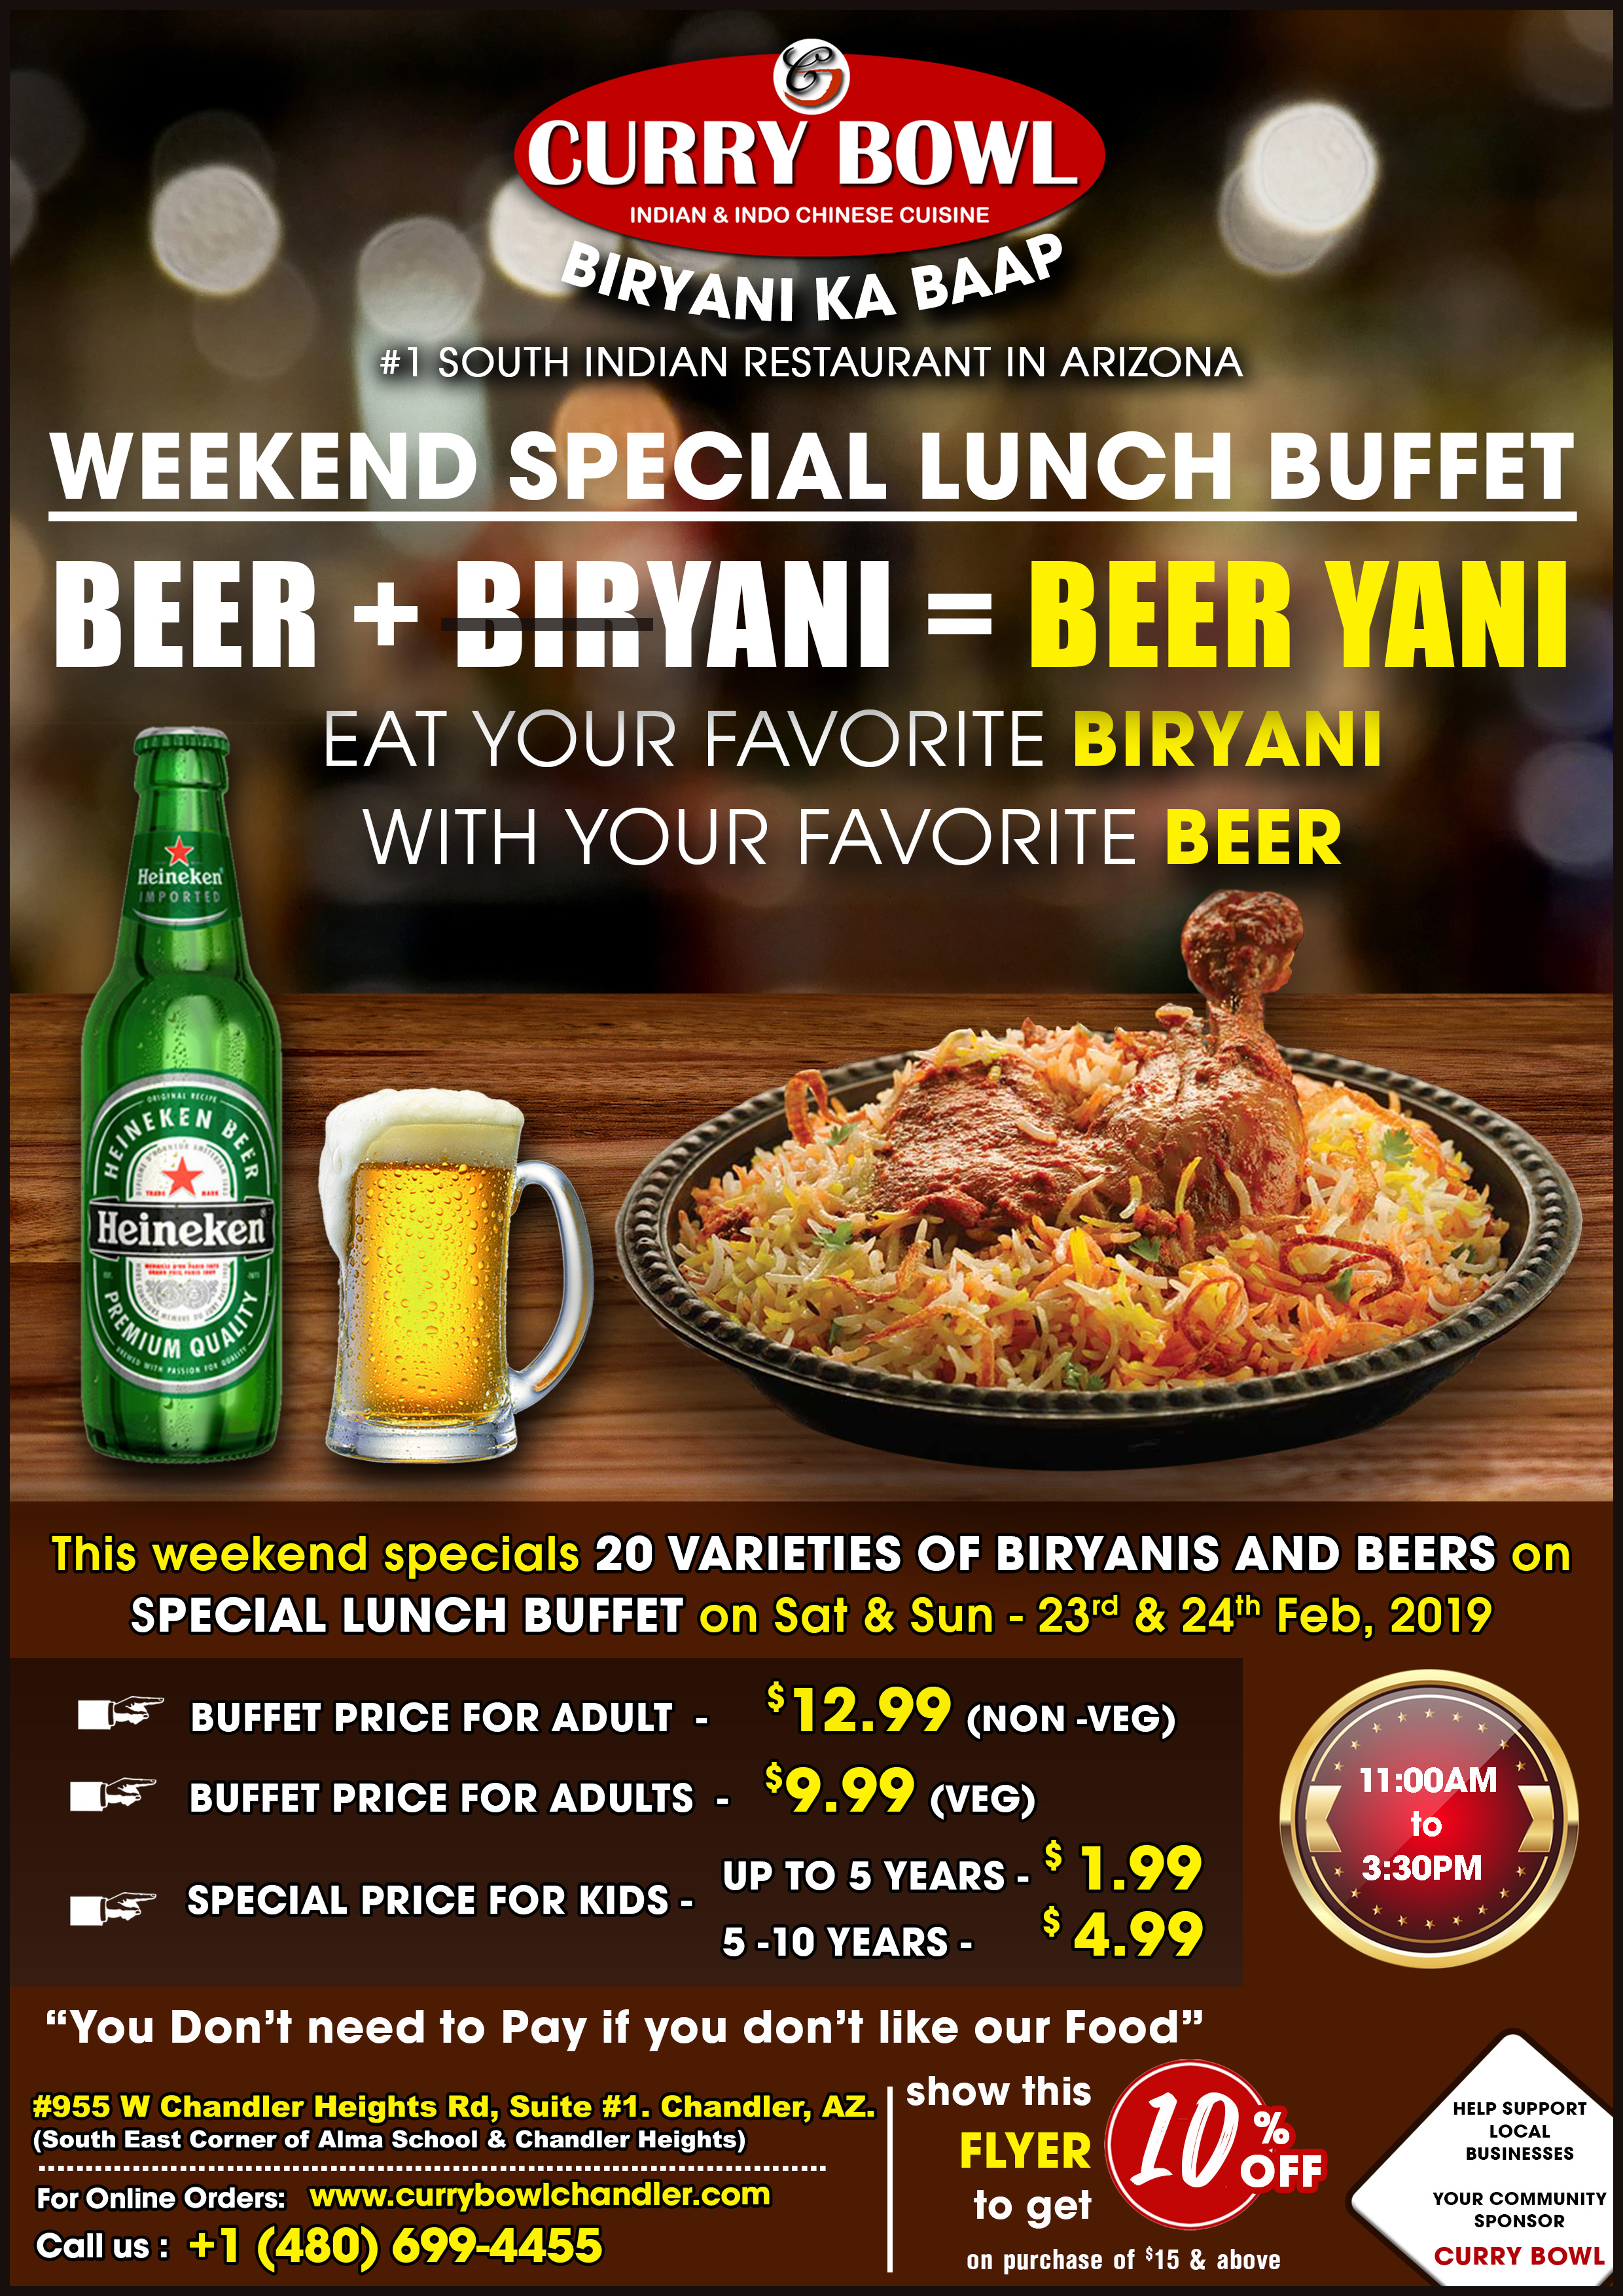 Weekend Special Lunch Buffet